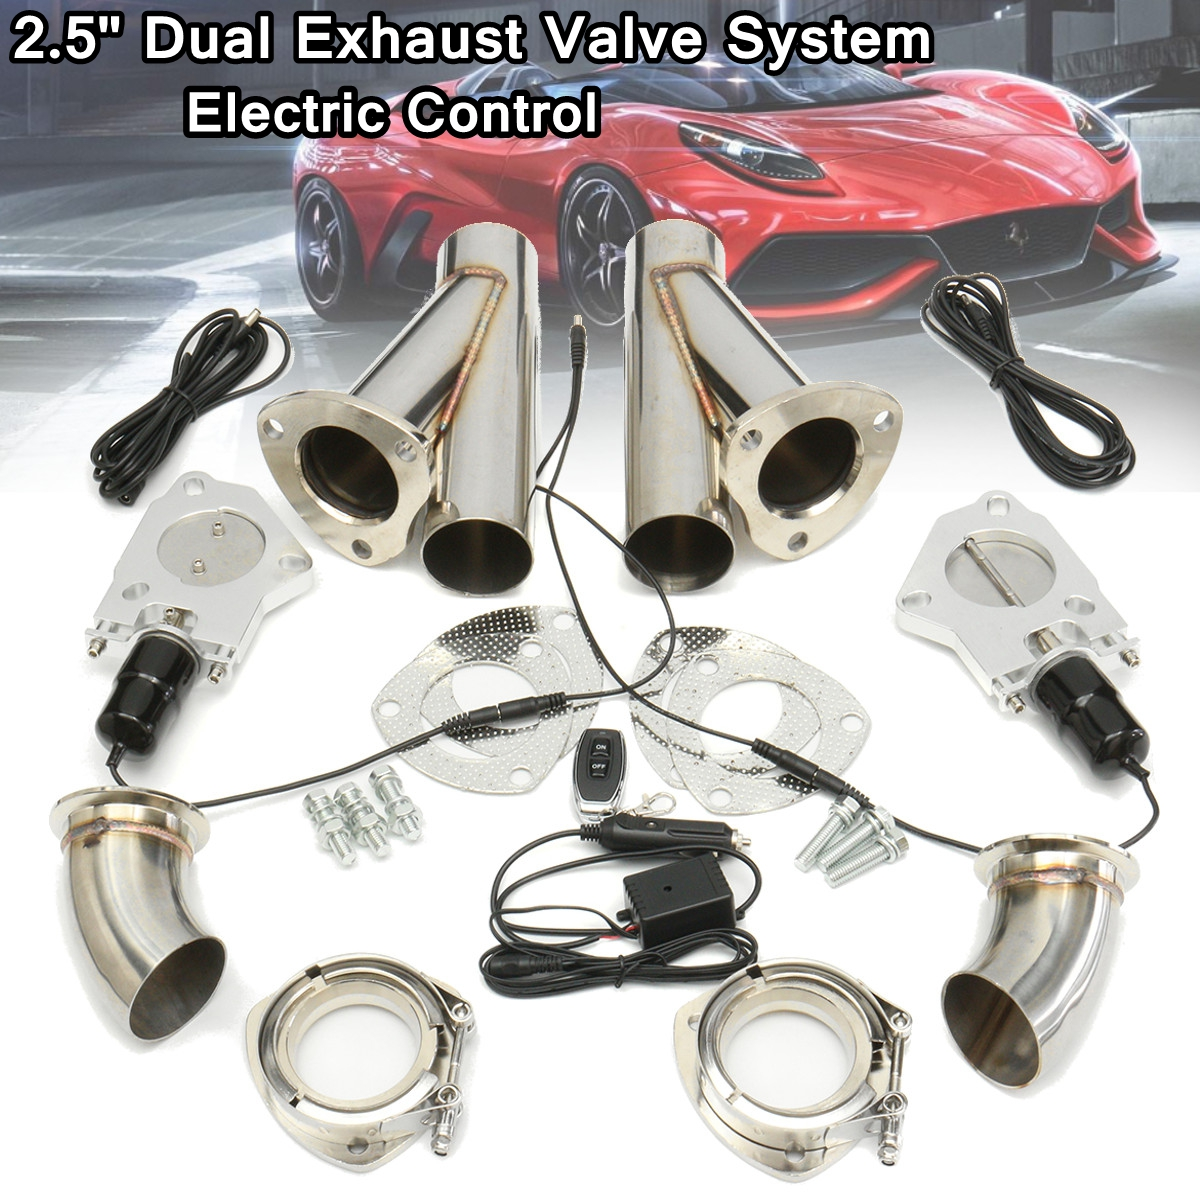 2.5 Inch 6.3mm Dual Electric Exhaust Muffler Valve System Cutout Pipe Kit with Remote Control Stainless Steel